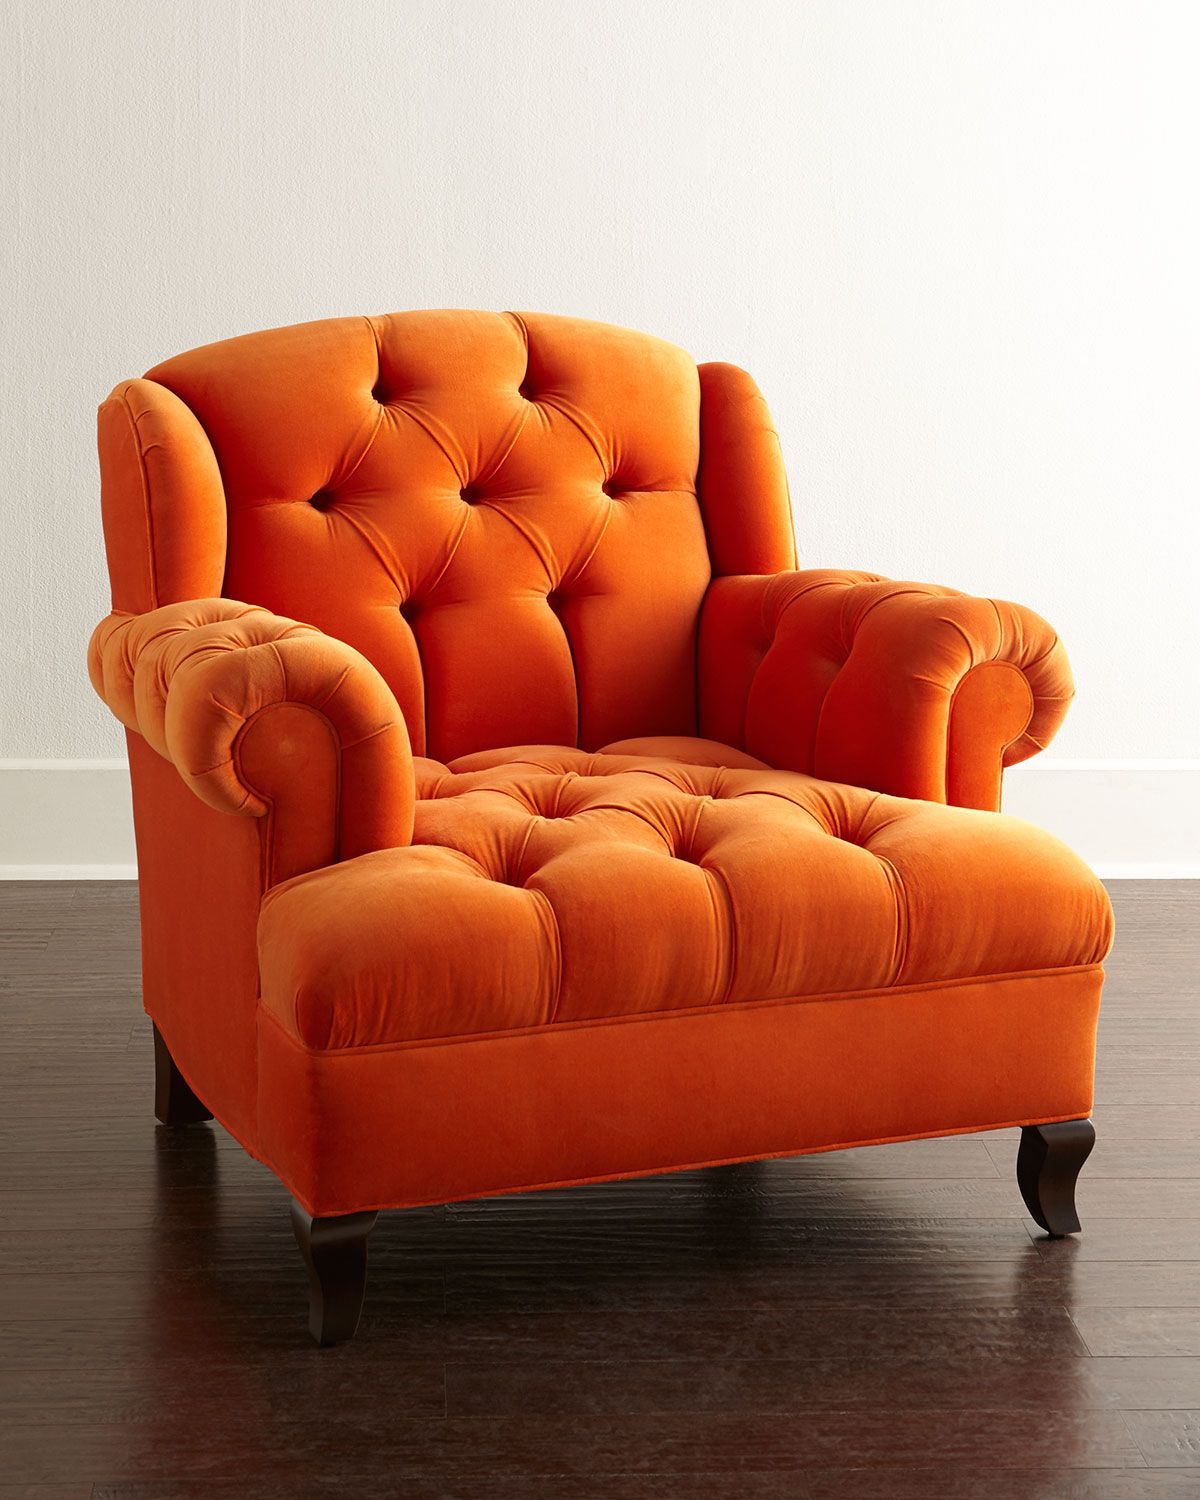 comfortable chairs for living room. The Mr. Chair - Most Comfortable Ever Created? Orange FurnitureOrange Living Room Chairs For